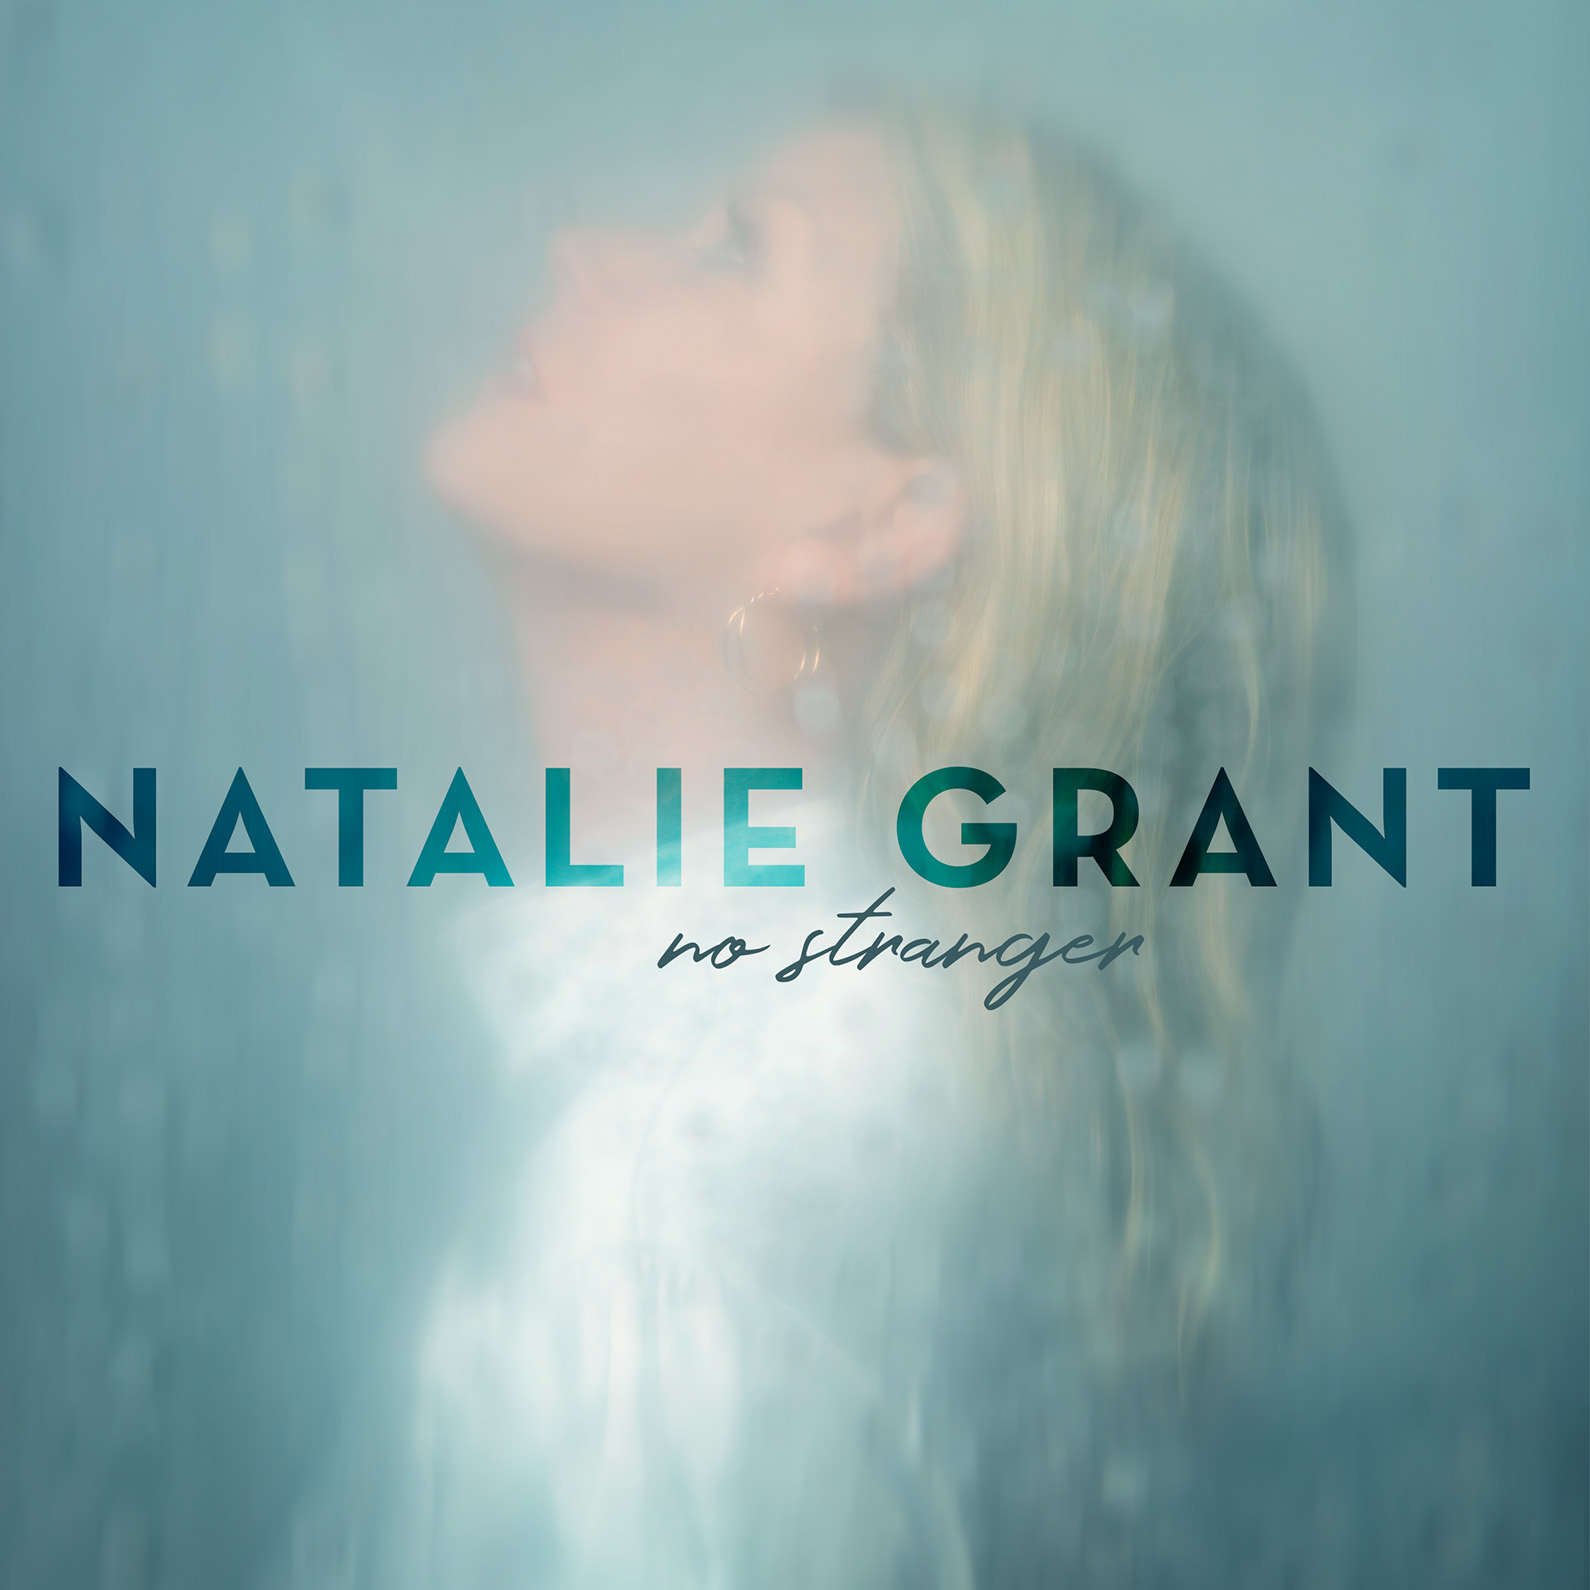 Music News: Natalie Grant's Upcoming Album, No Stranger, Available for Pre-Order/Save Today